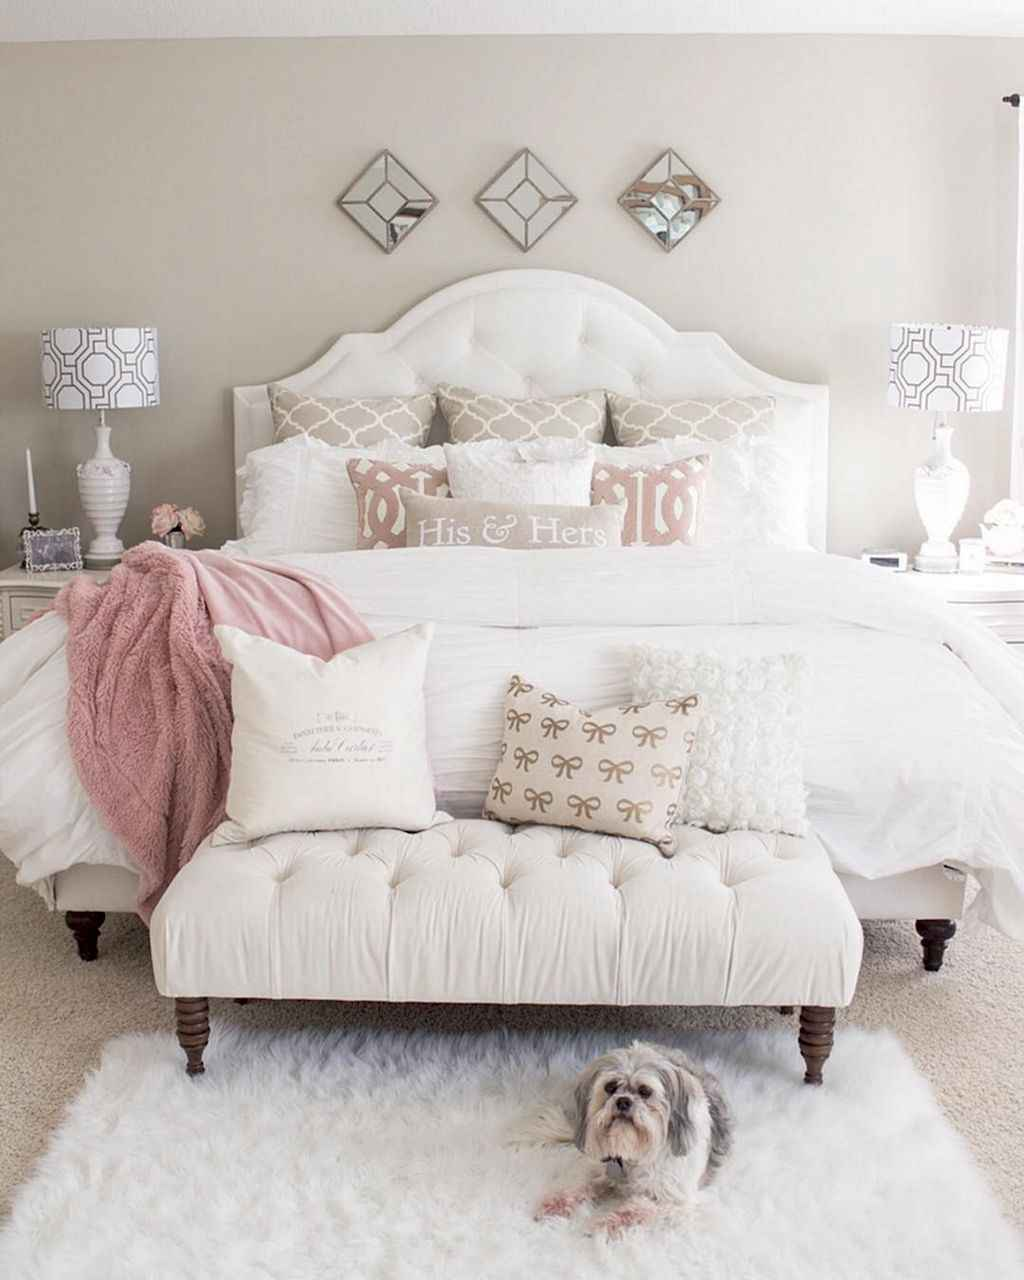 Awesome bedroom decoration ideas (59)